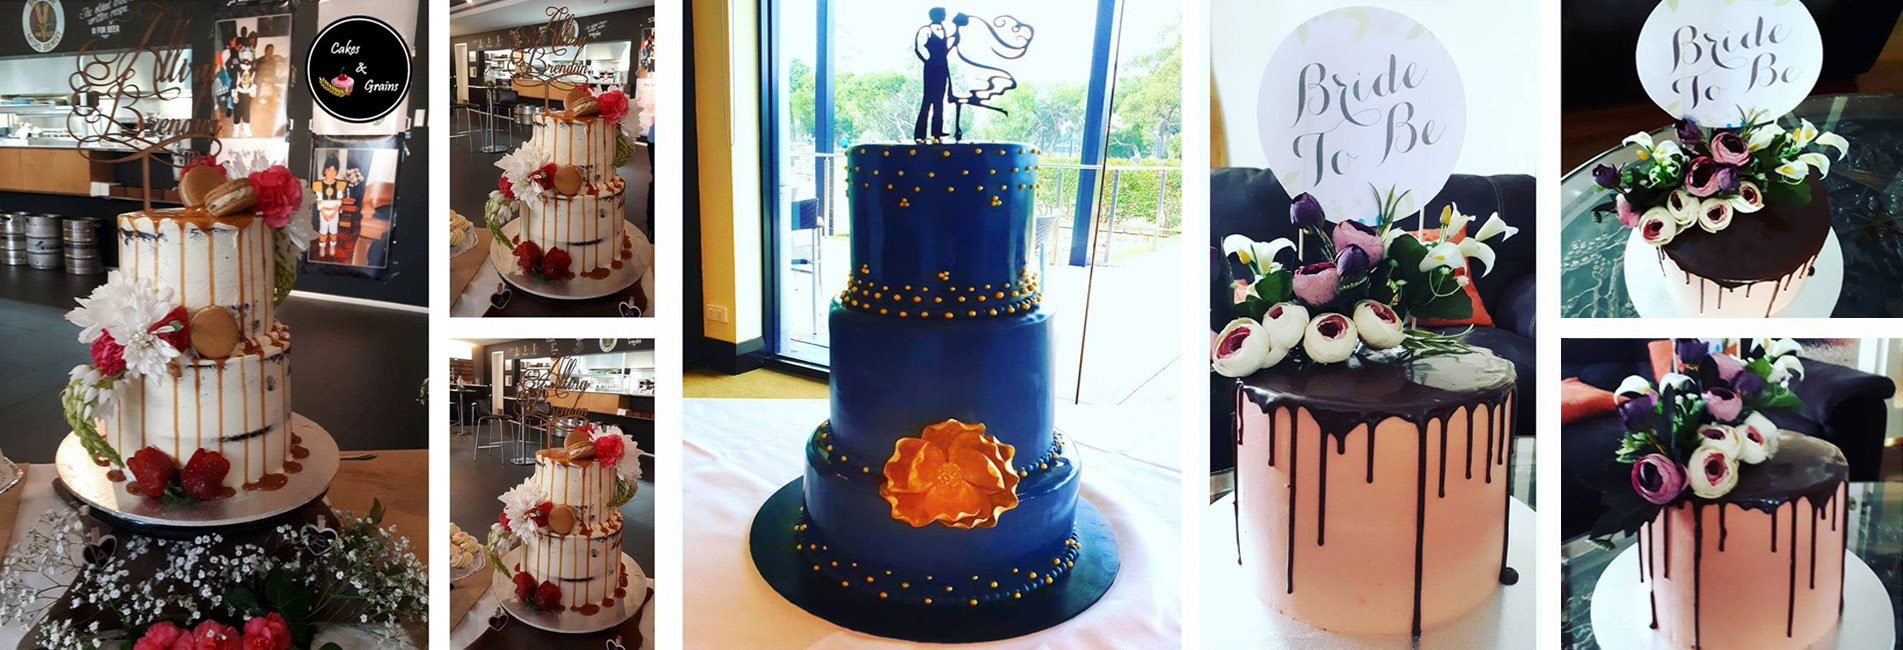 Wedding Cakes Hampton Park, Birthday Cakes Melbourne, Filipino Cakes Cranbourne